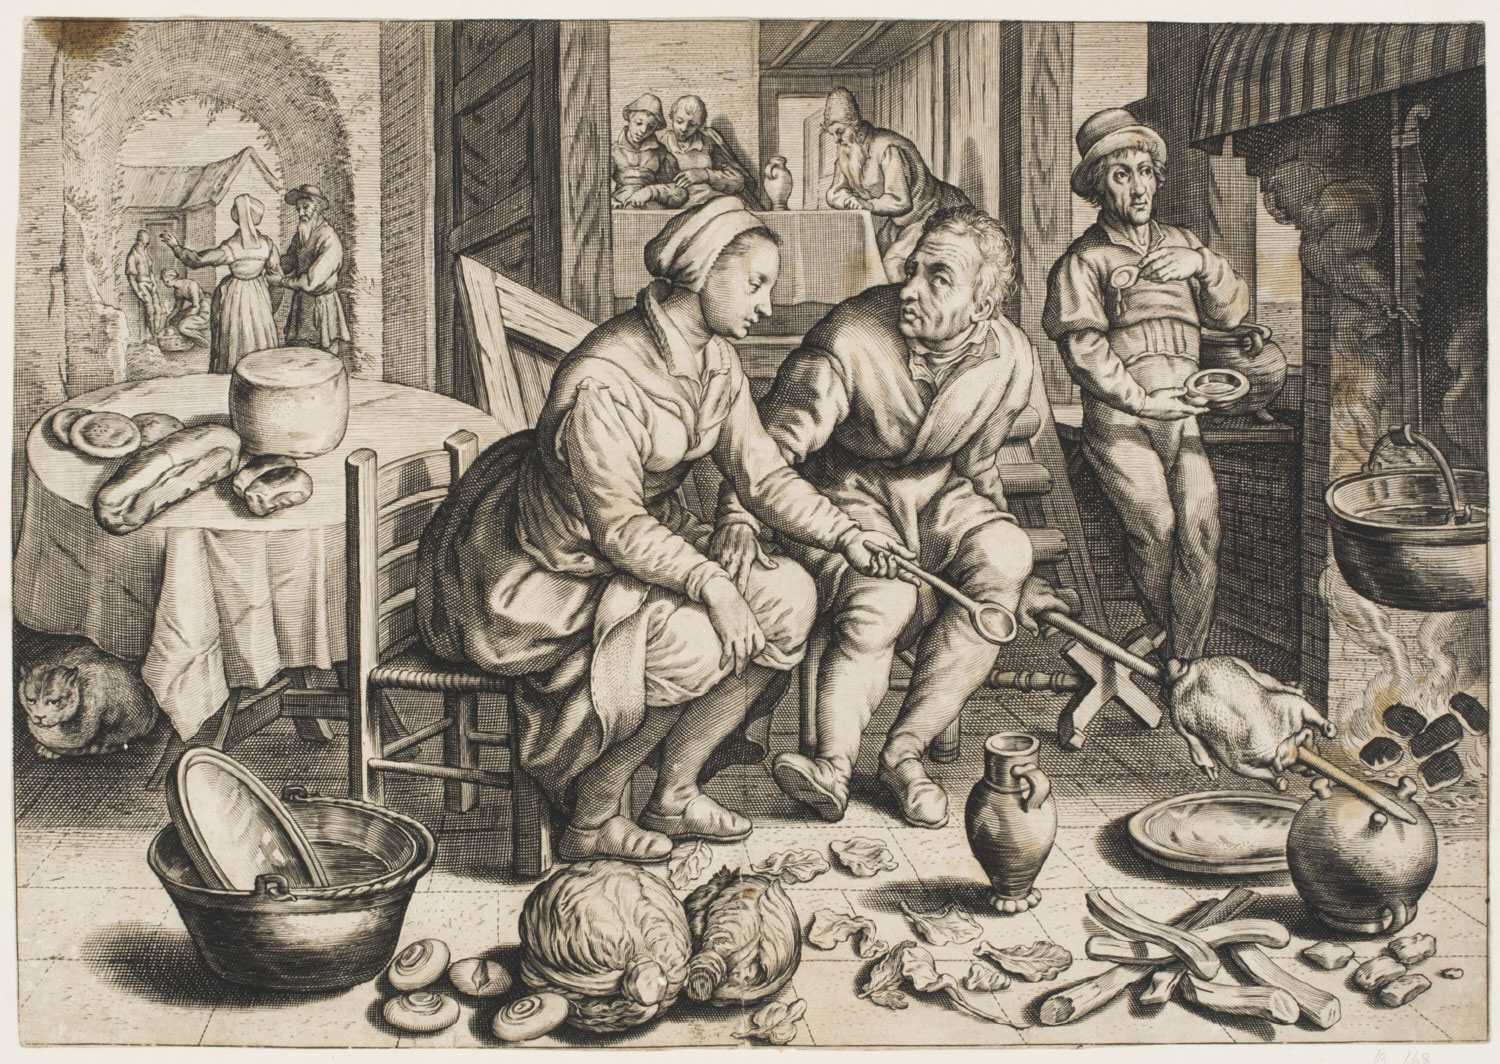 Kitchen Scene with Man and Woman Roasting a Chicken